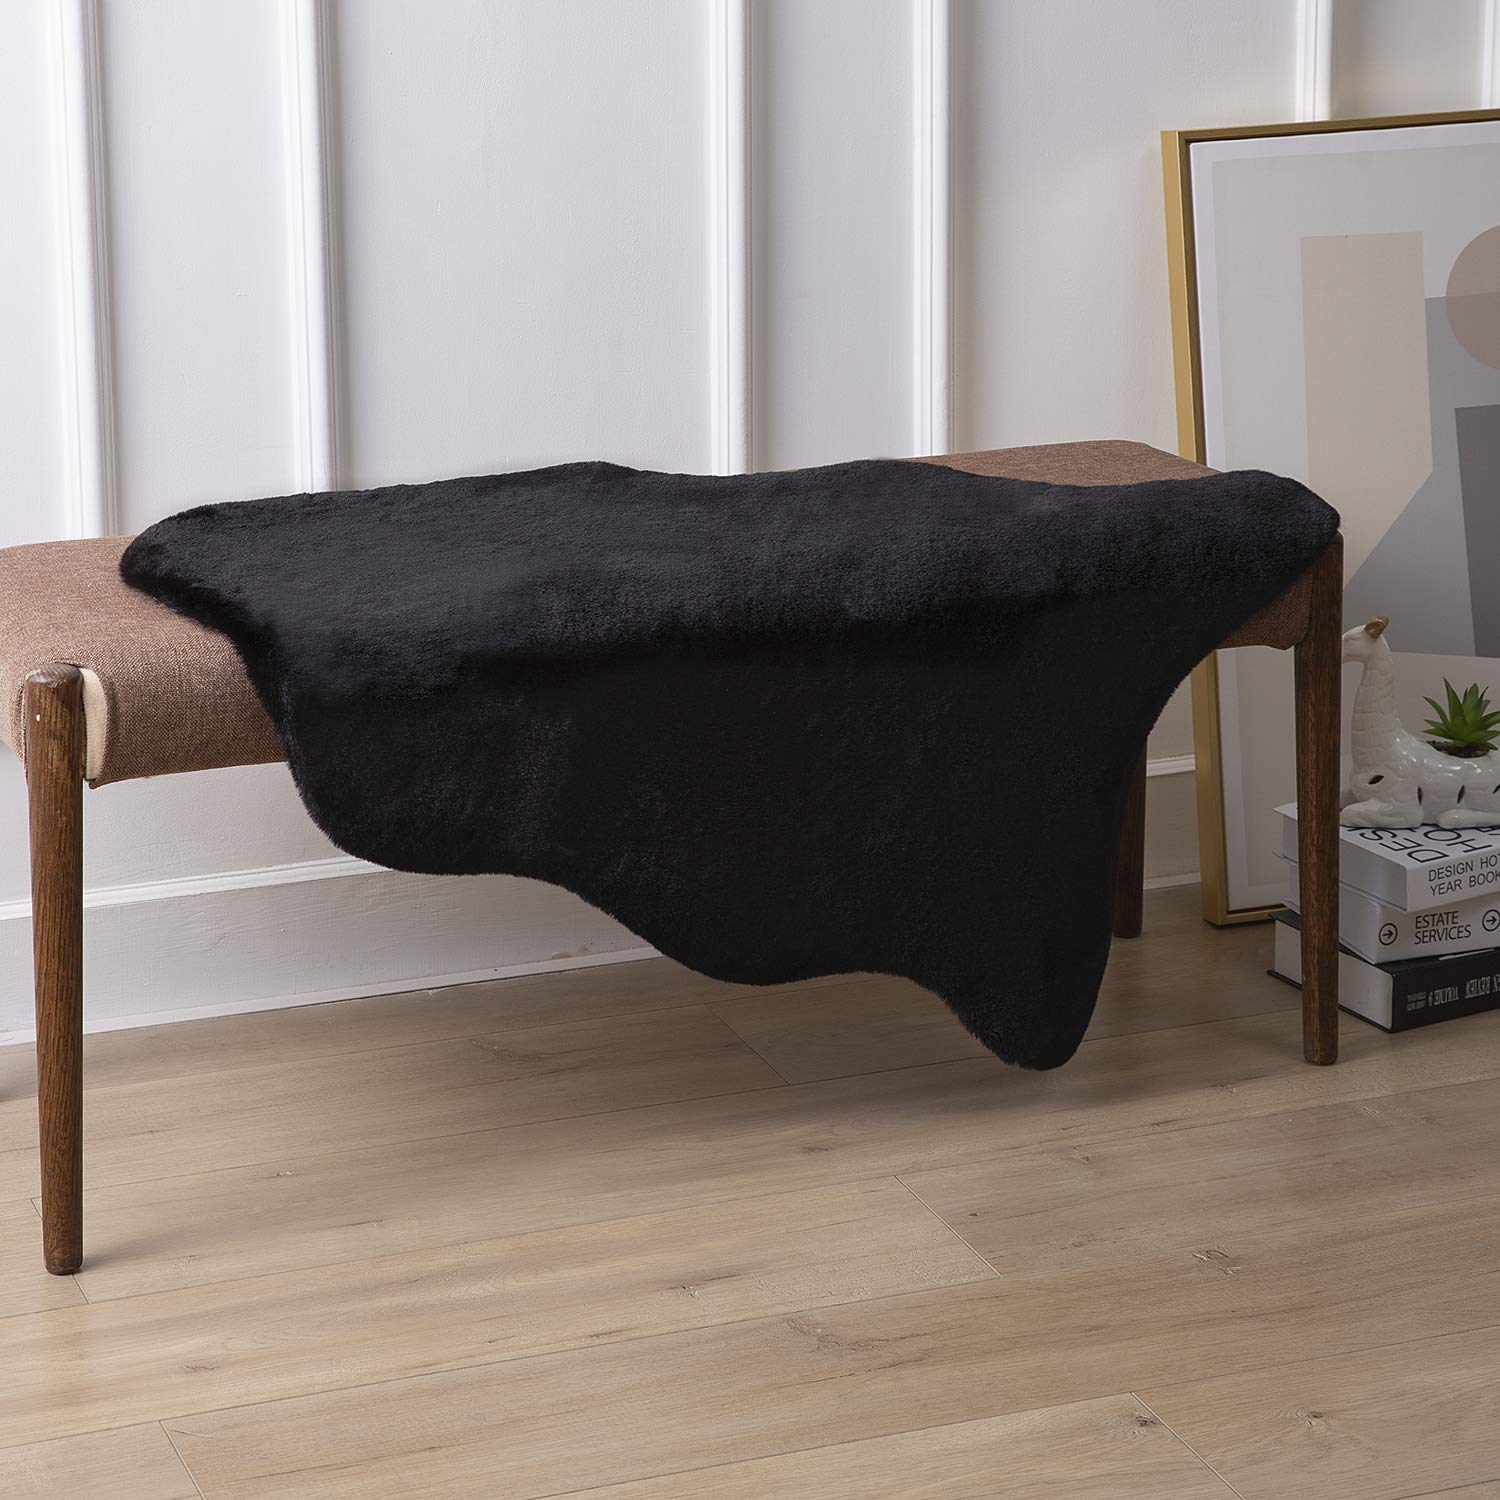 Ashler Soft Faux Rabbit Fur Chair Couch Cover Area Rug for Bedroom Floor Sofa Living Room Black 2 x 3 Feet